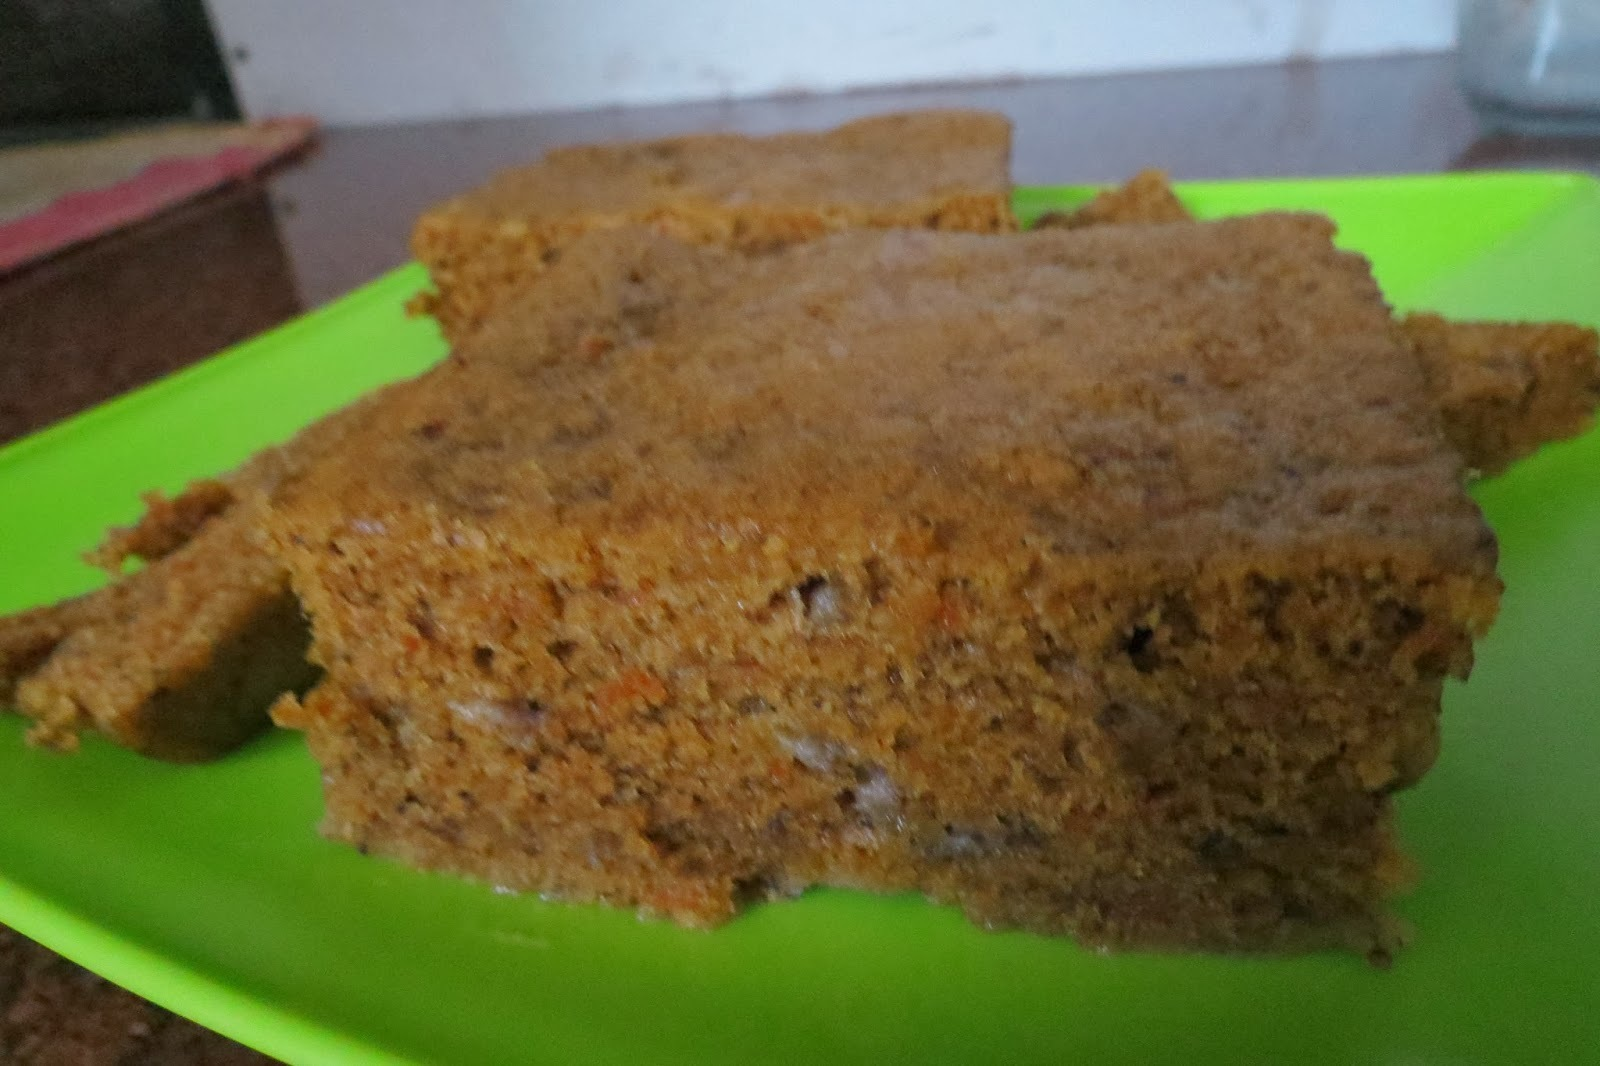 Apple banana carrot cake